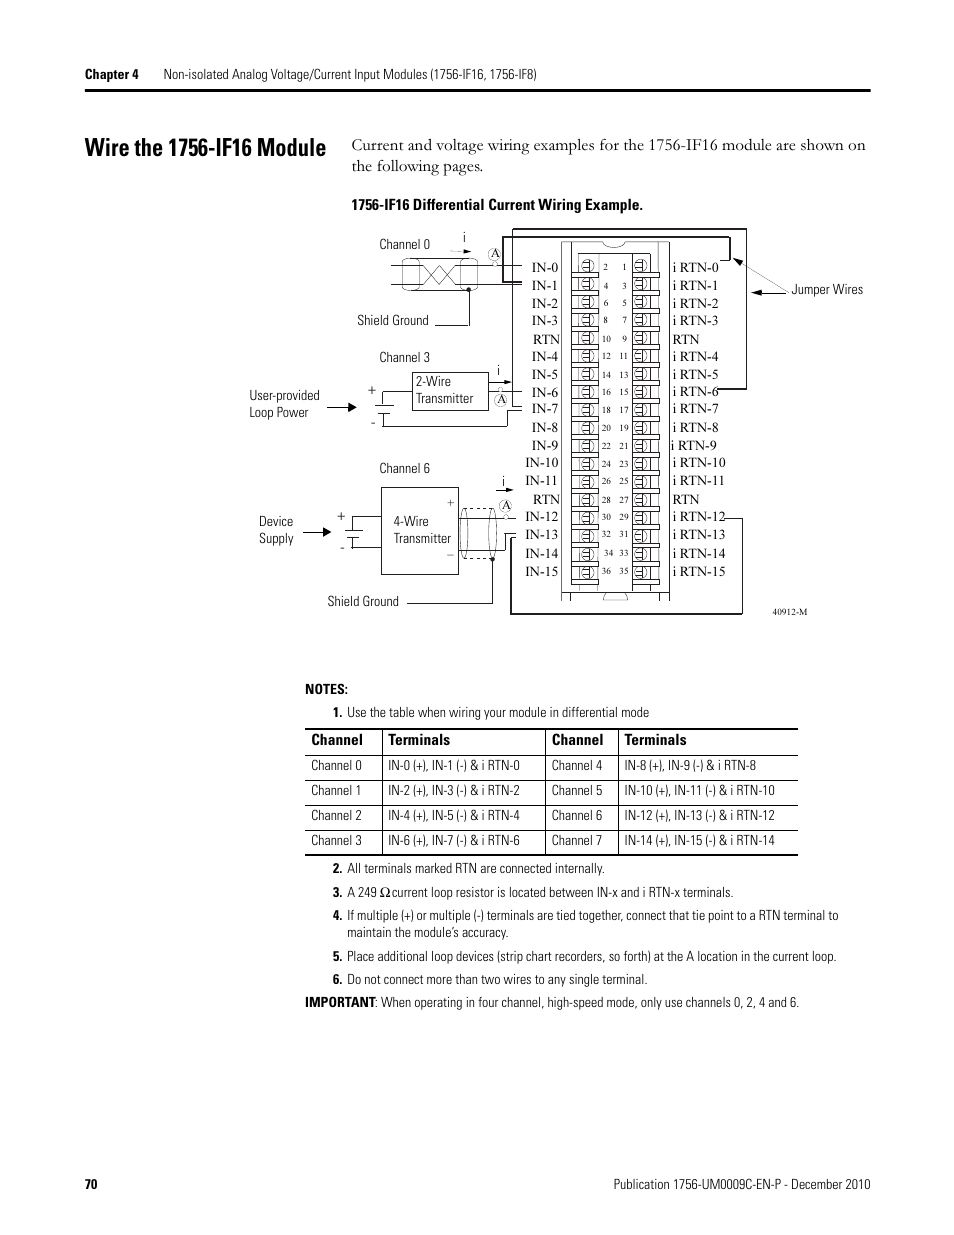 rockwell automation 1756 xxxx controllogix analog i_o modules page70?resize=665%2C861 diagrams 15991169 holiday rambler wiring diagram holiday Holiday Rambler Schematics at edmiracle.co